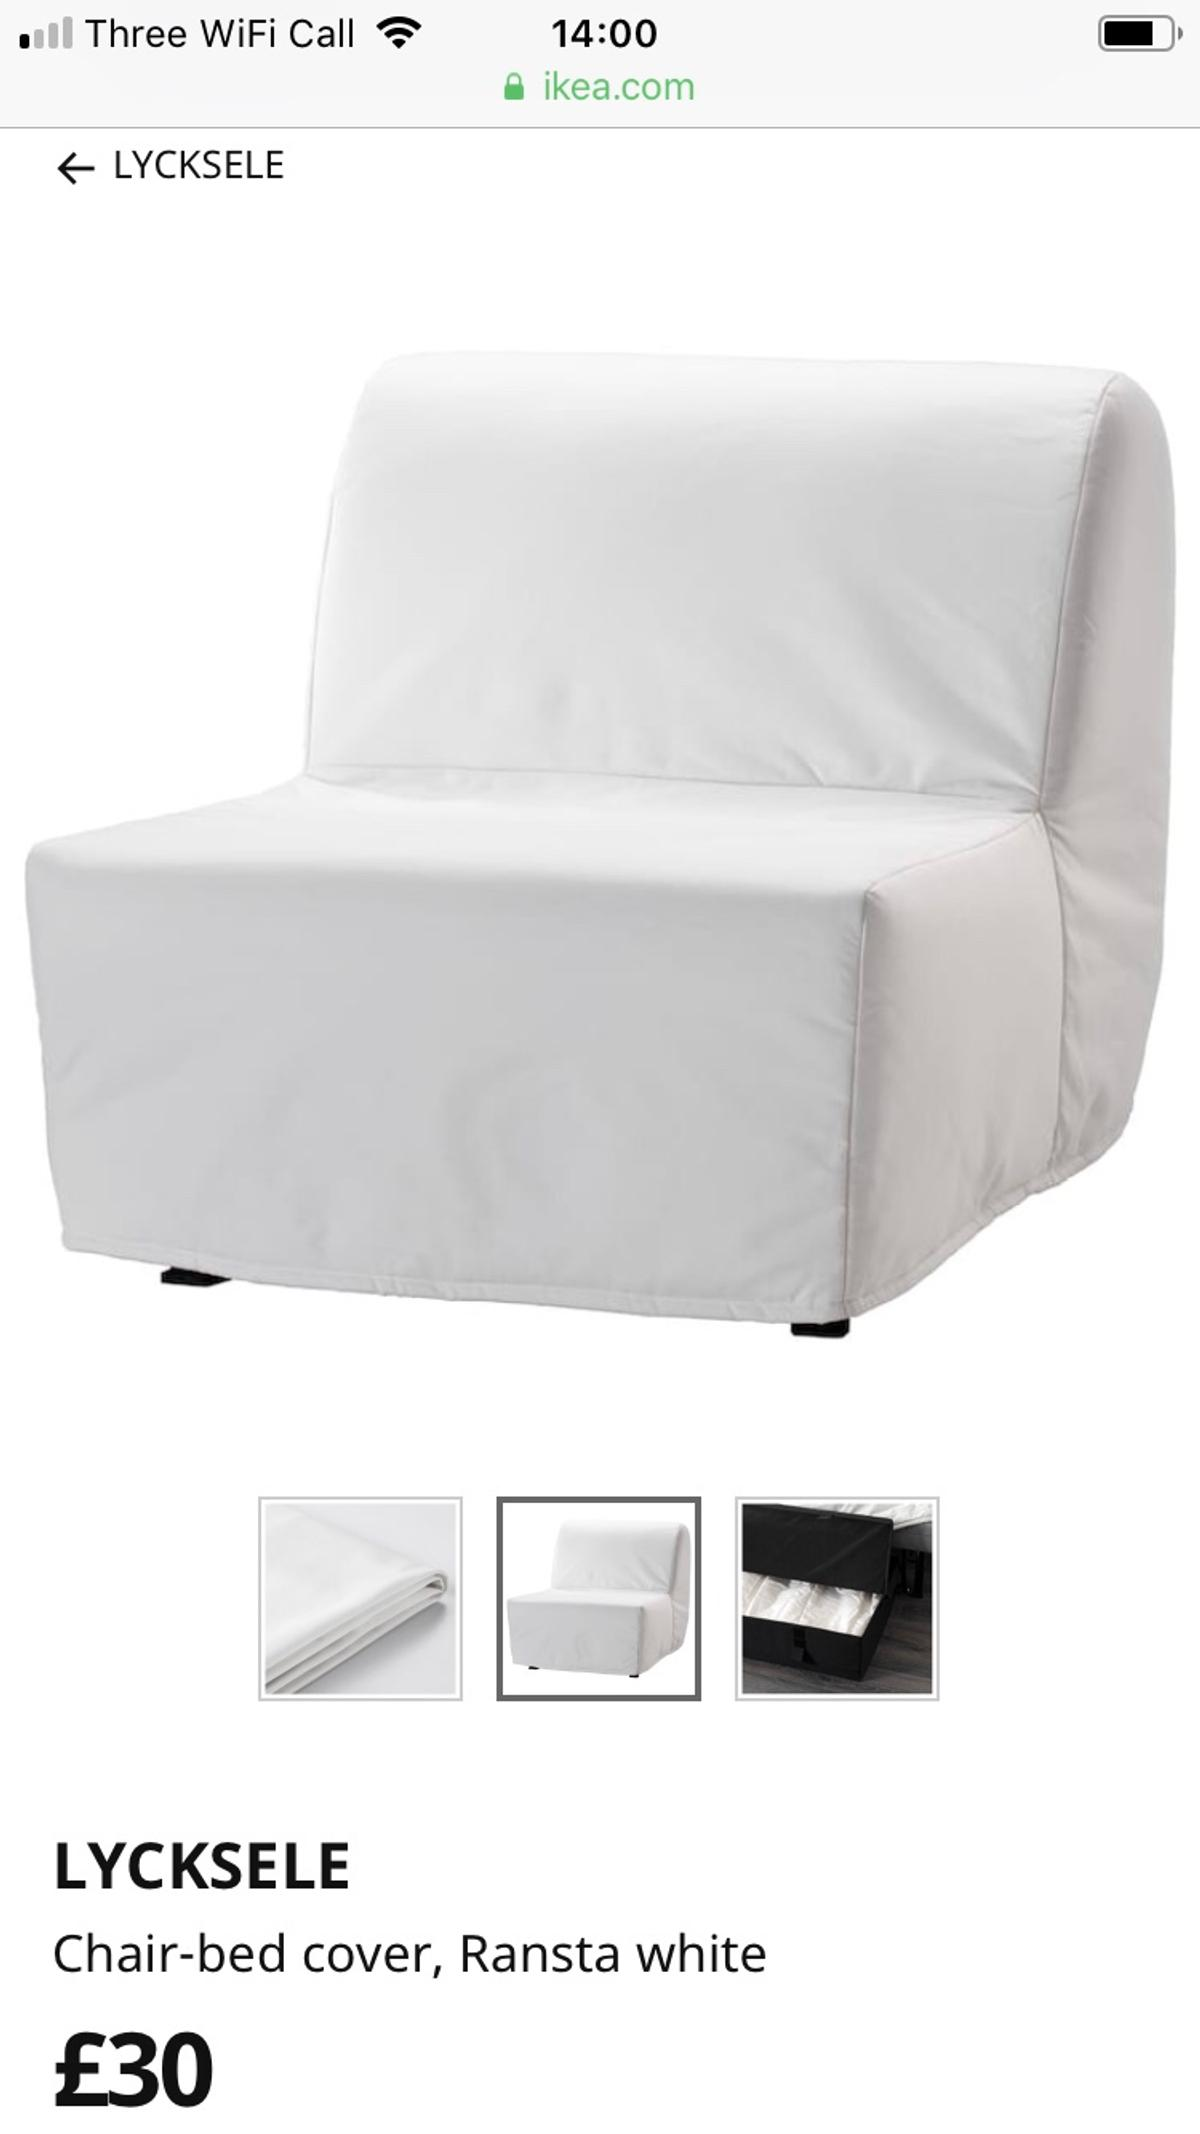 Awesome Syckele Single Sofa Bed Chair Covers Pabps2019 Chair Design Images Pabps2019Com